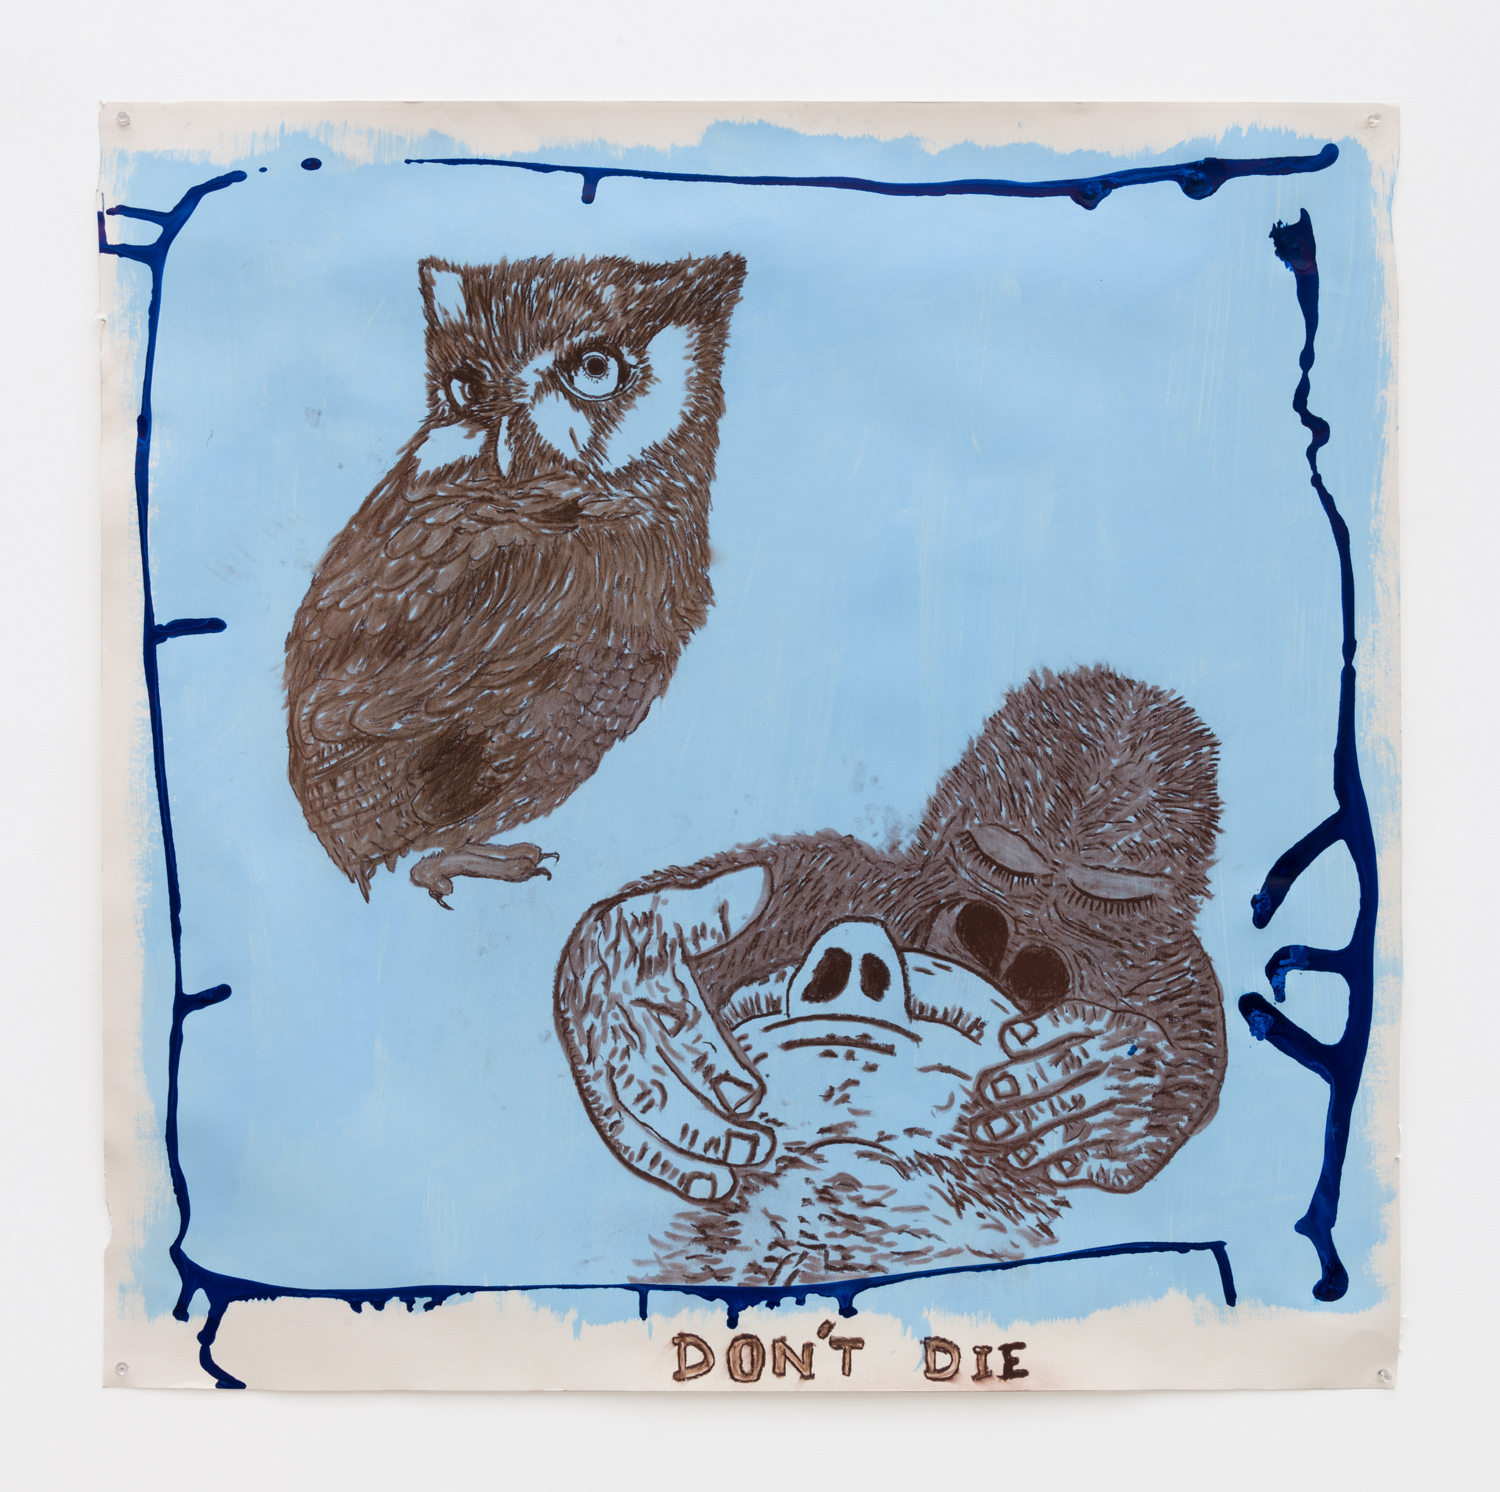 Don't Die, 2017  Acrylic and pastel on paper  36 x 36 inches